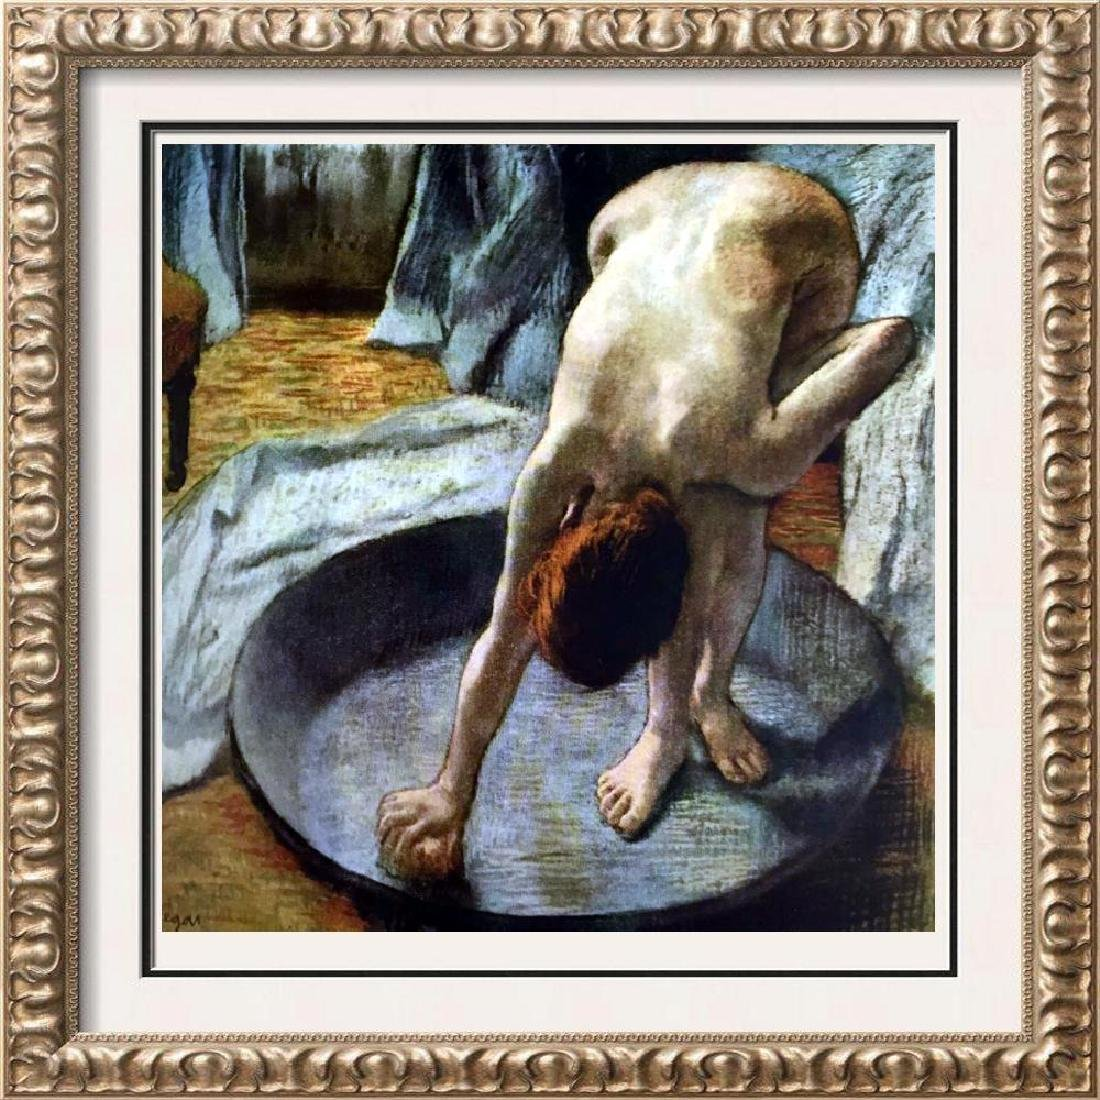 Edgar-Hilaire-Germain Degas The Tub c.1886 Fine Art